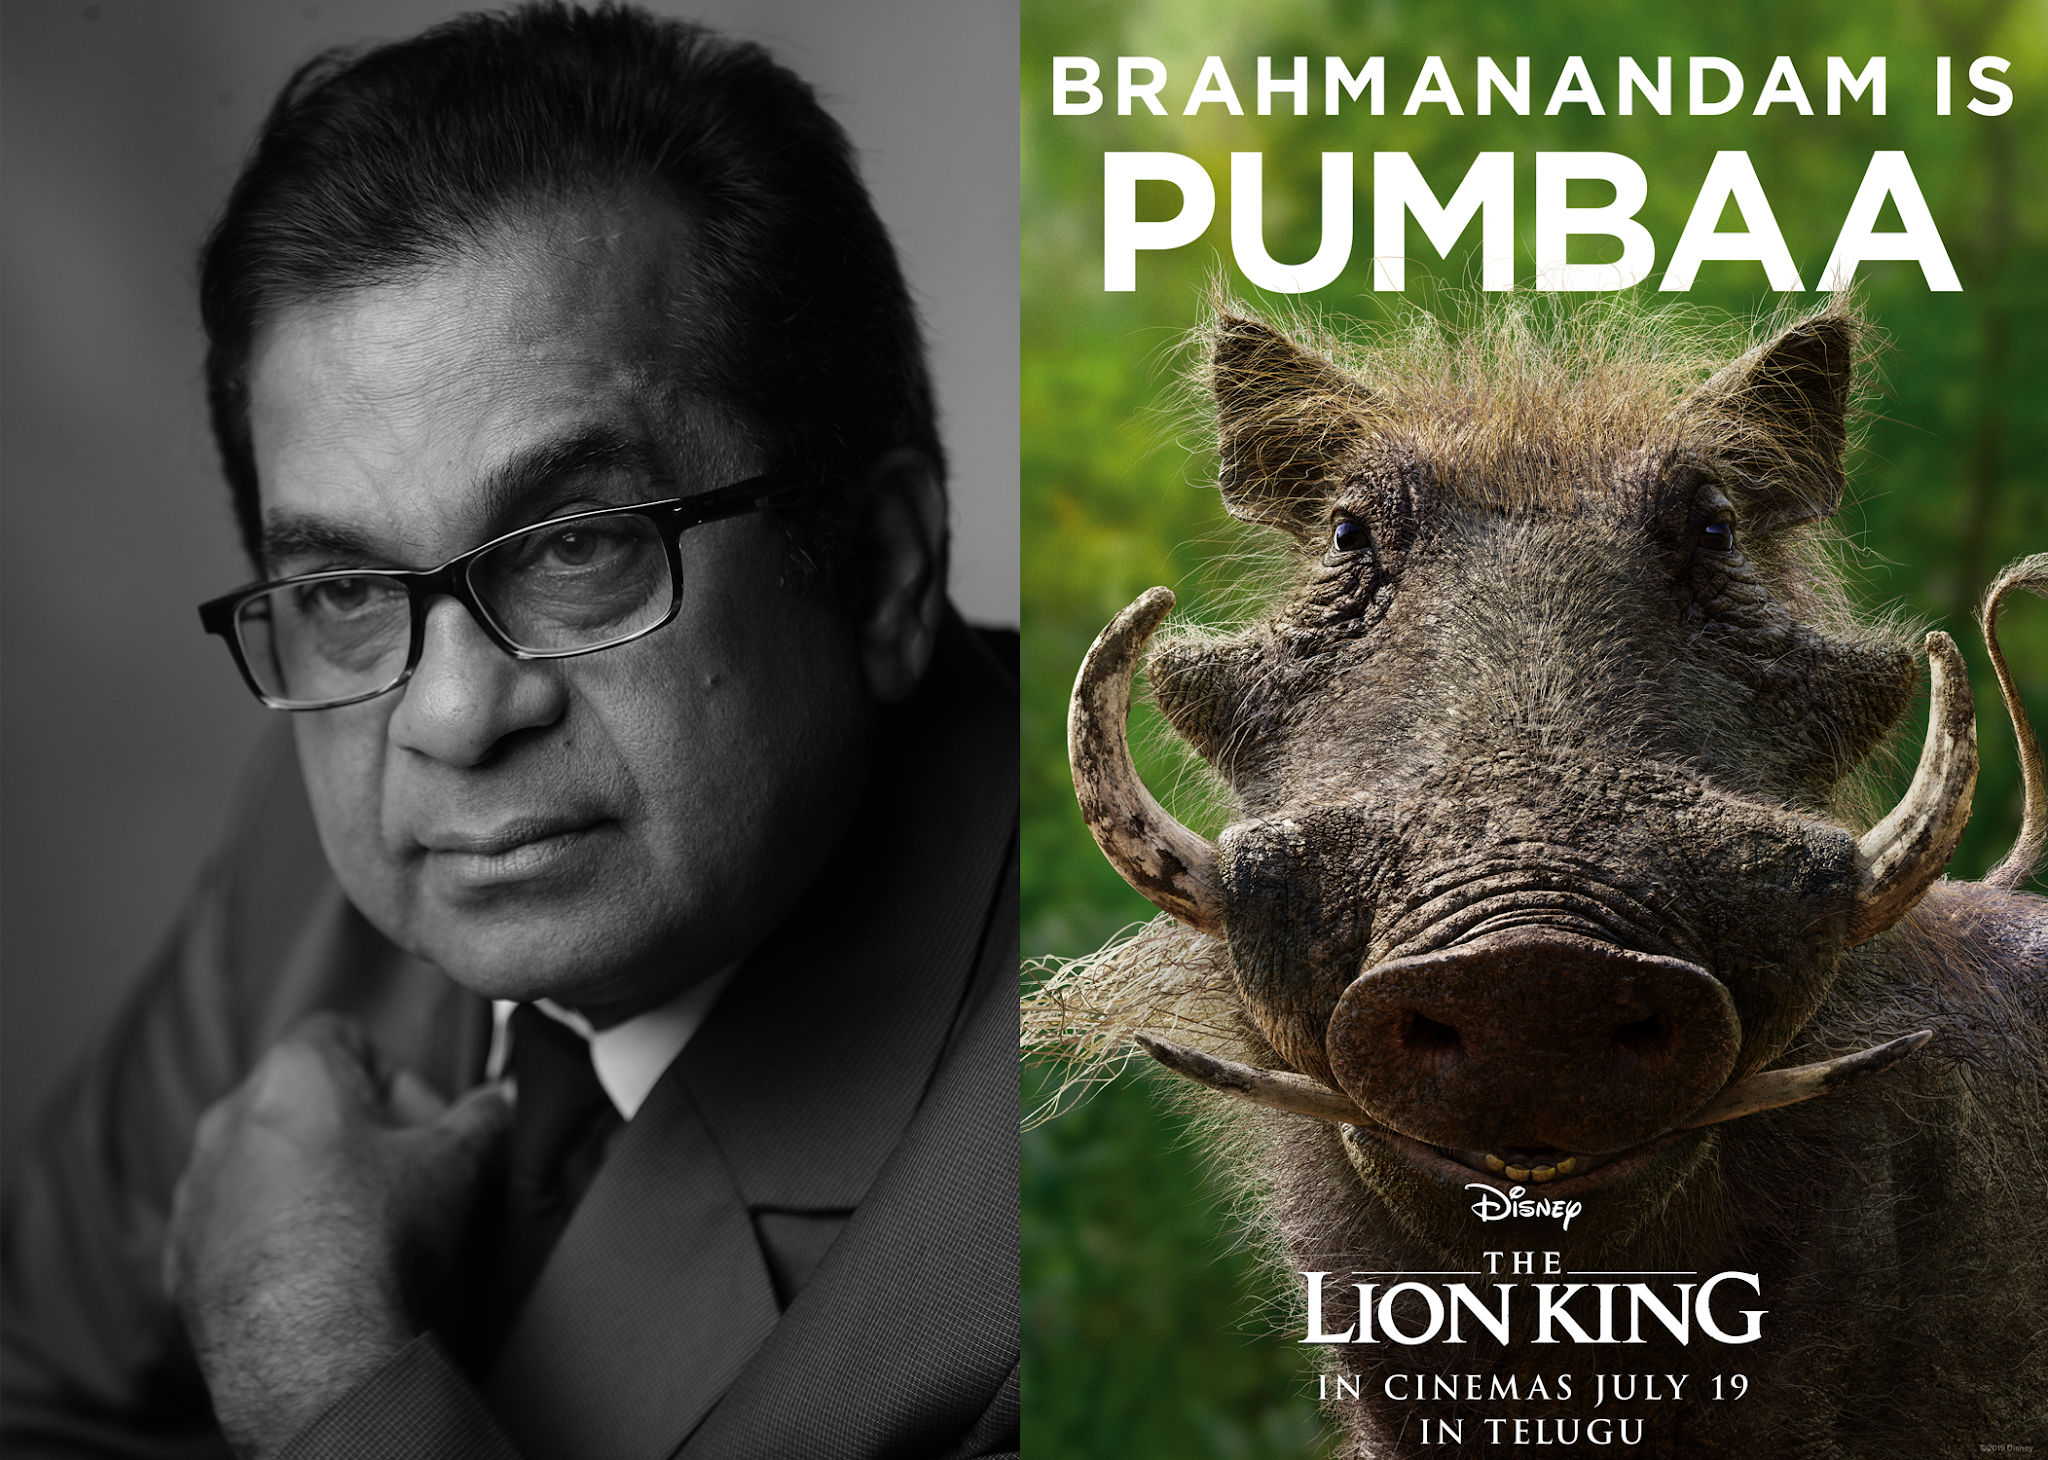 Comedians Brahmanandam lend their voice to lion king